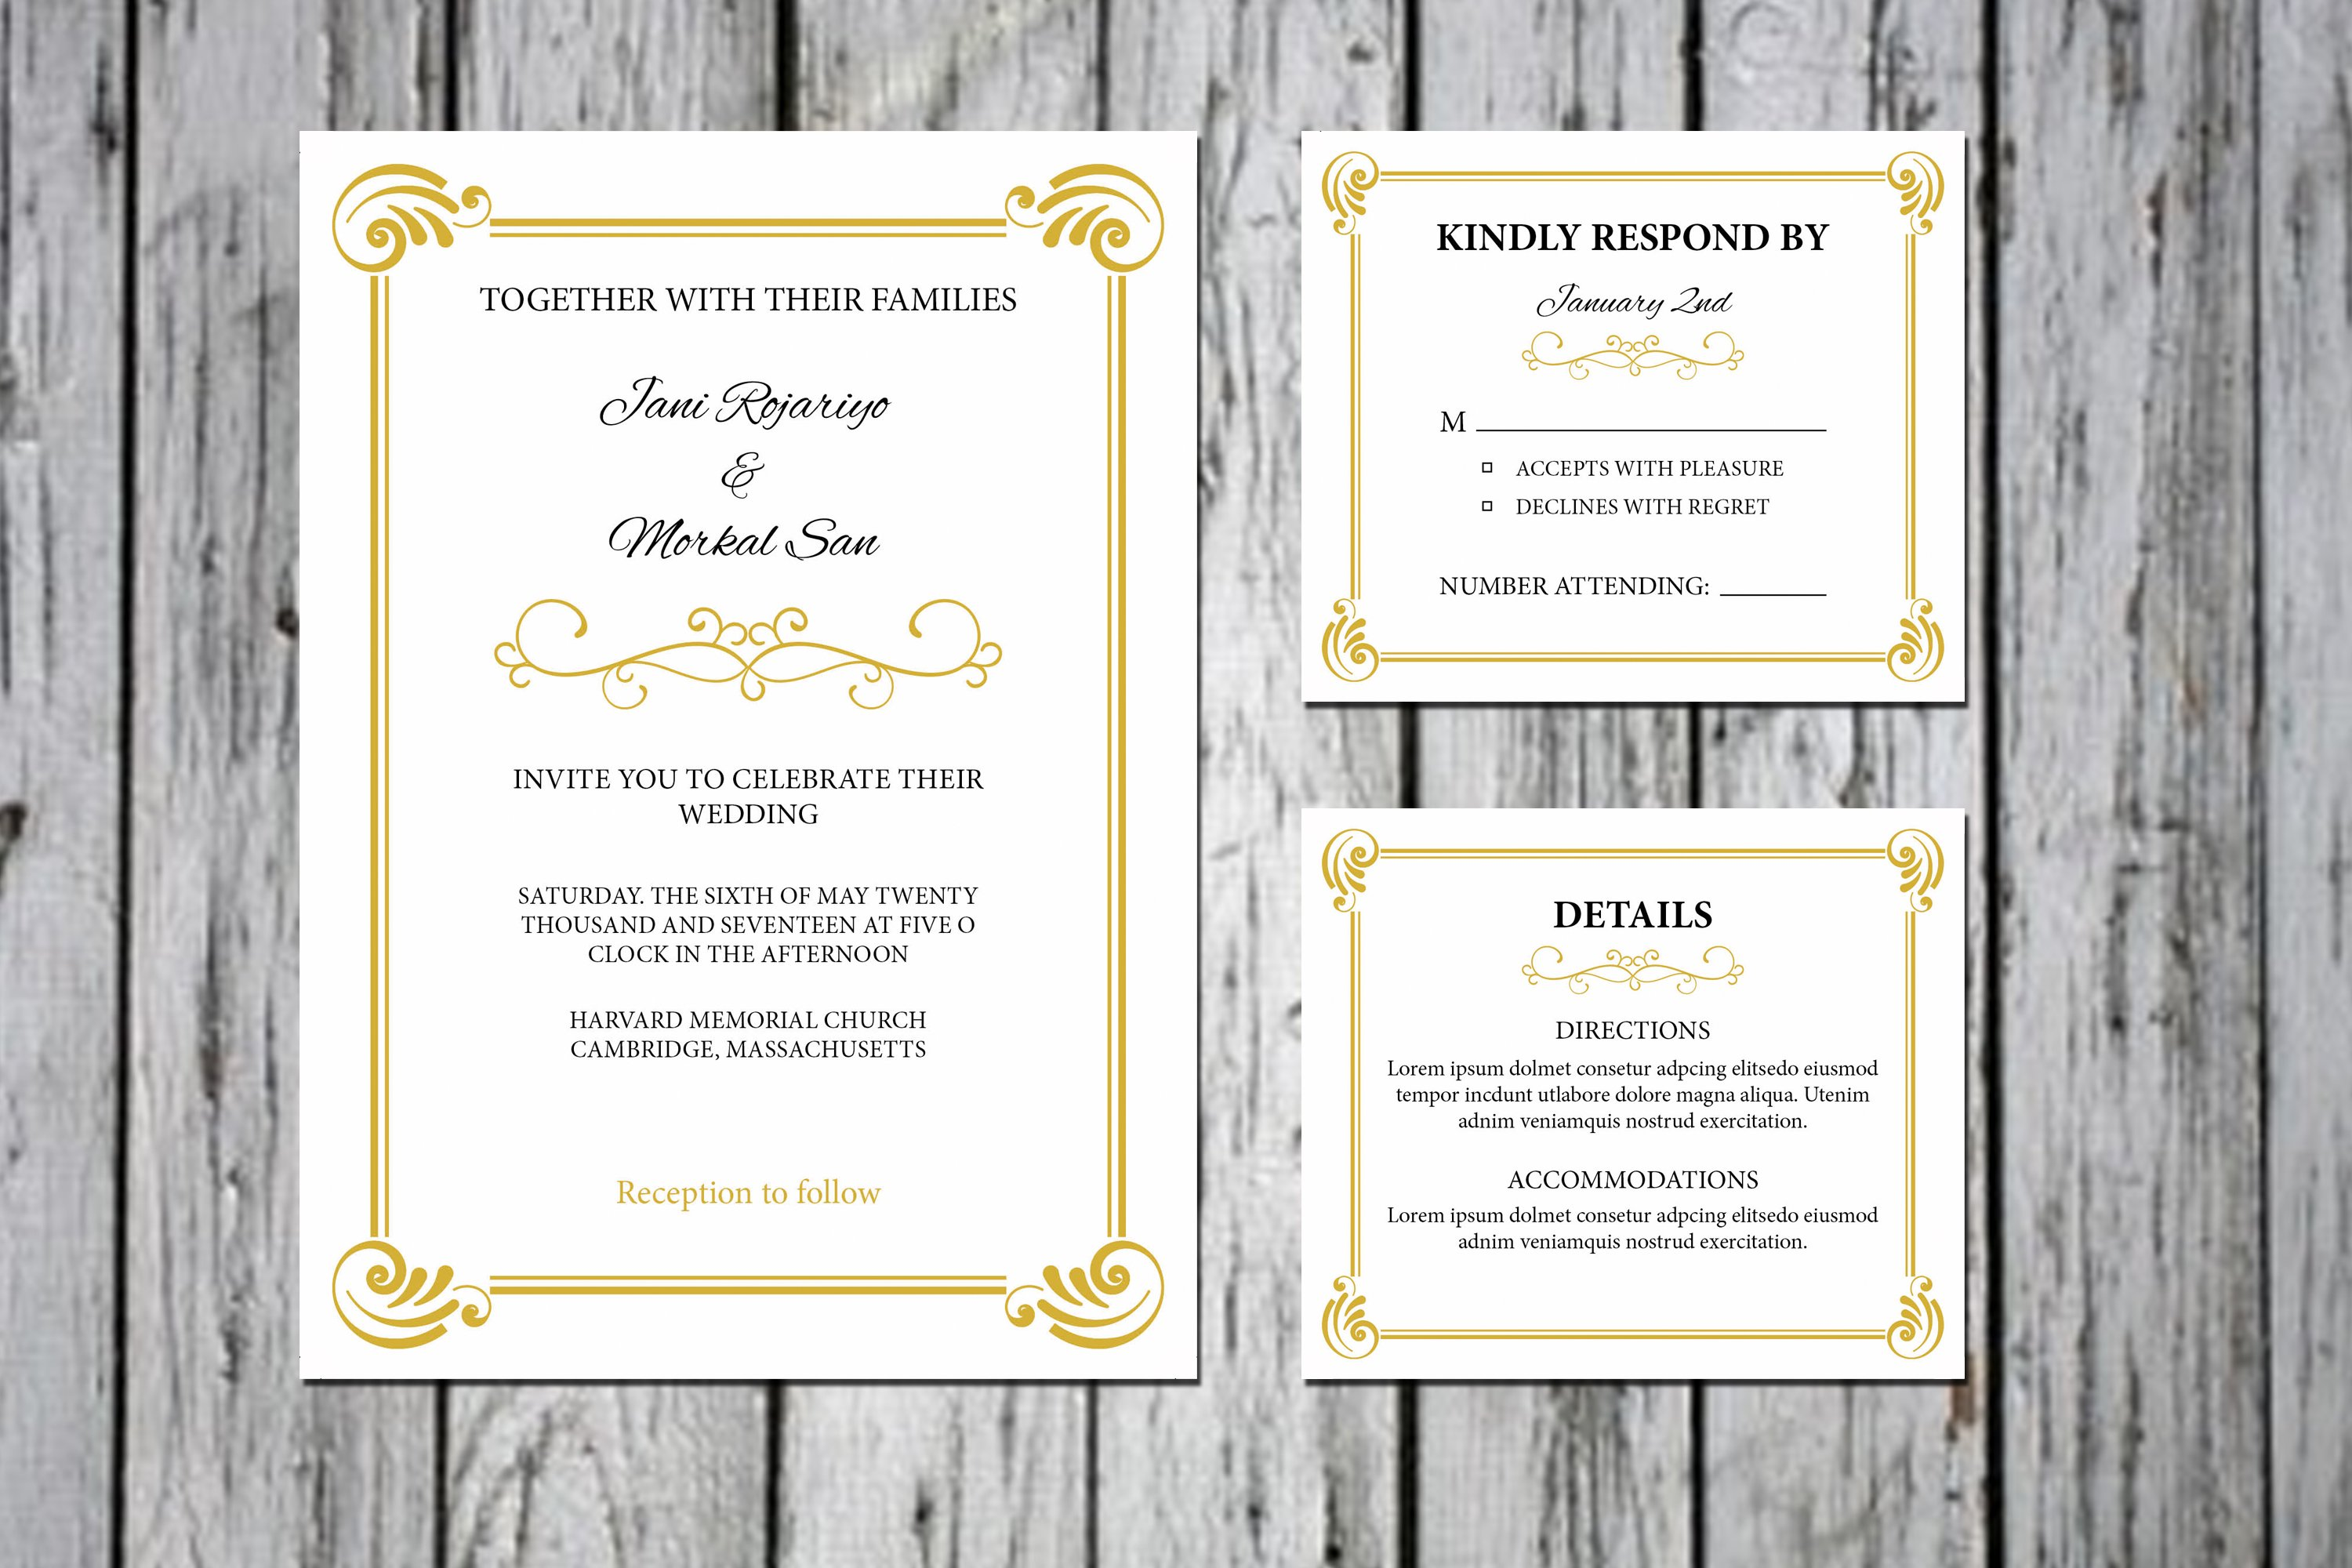 Wedding invitation template invitation templates creative market stopboris Choice Image